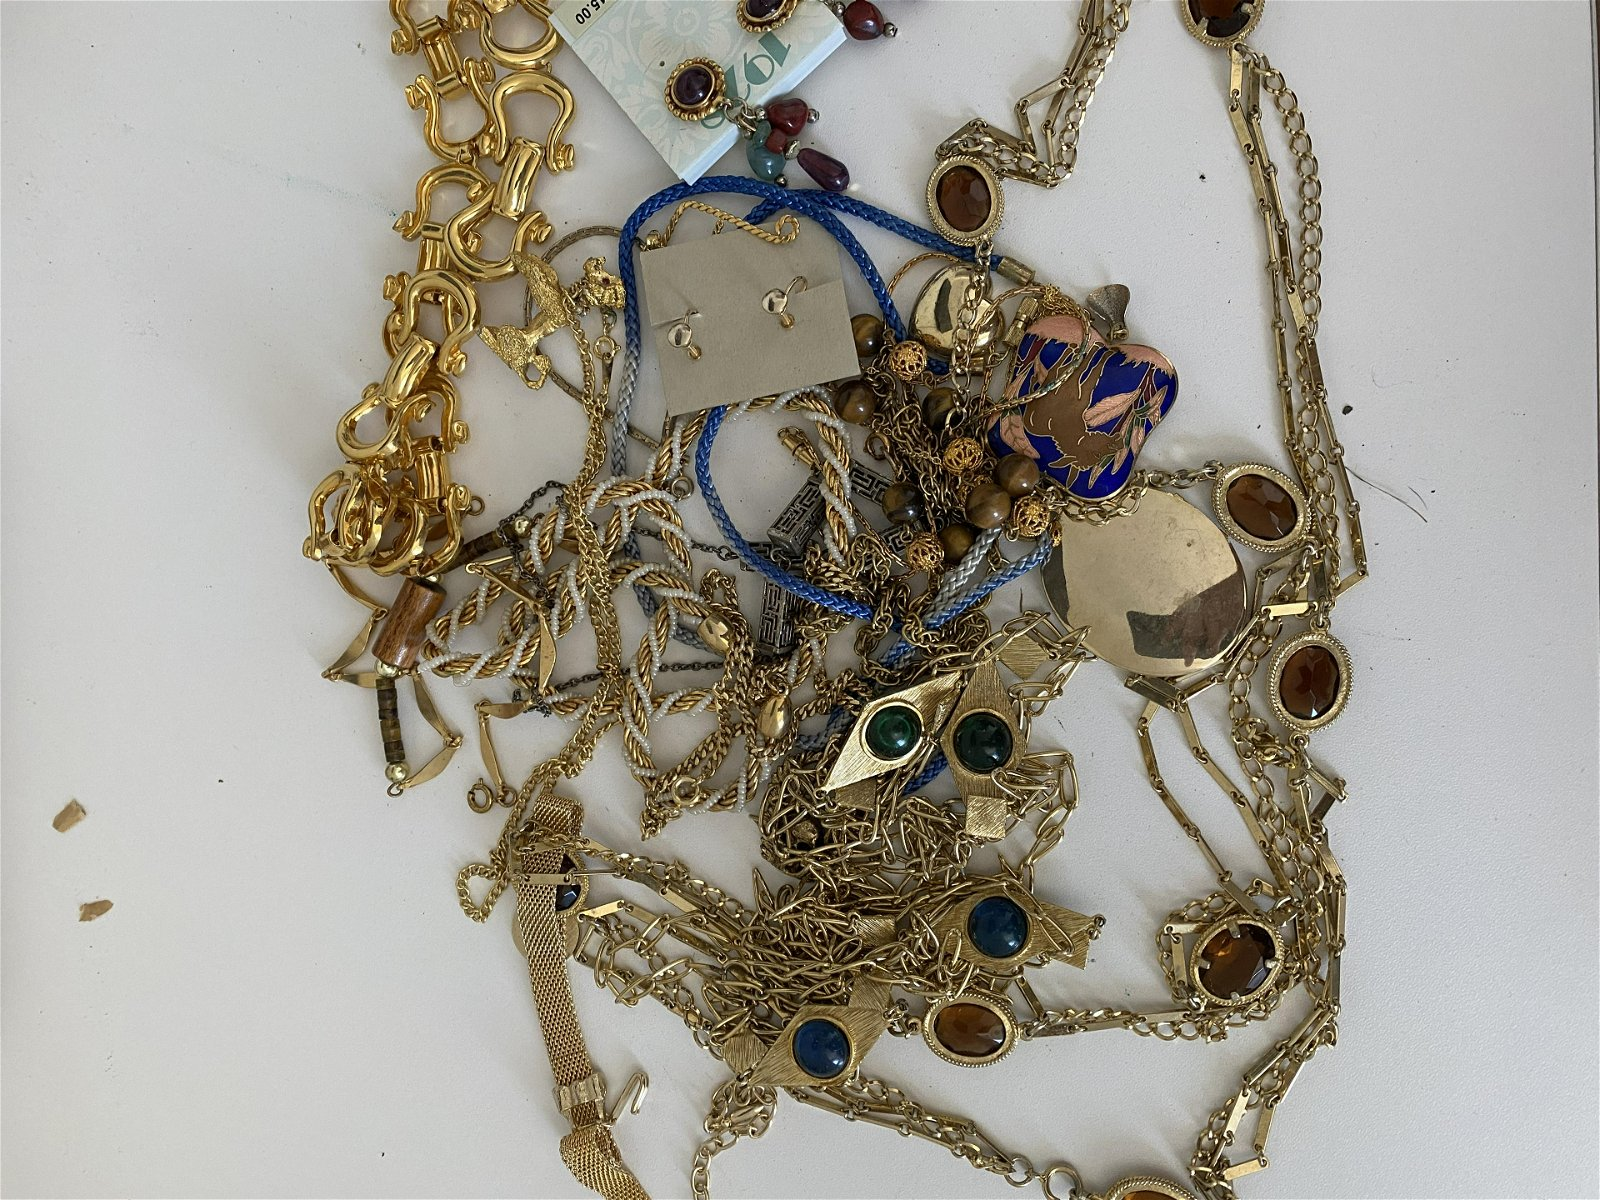 HIGH GRADE LOT OF UNSEARCHED GOLD JEWELRY